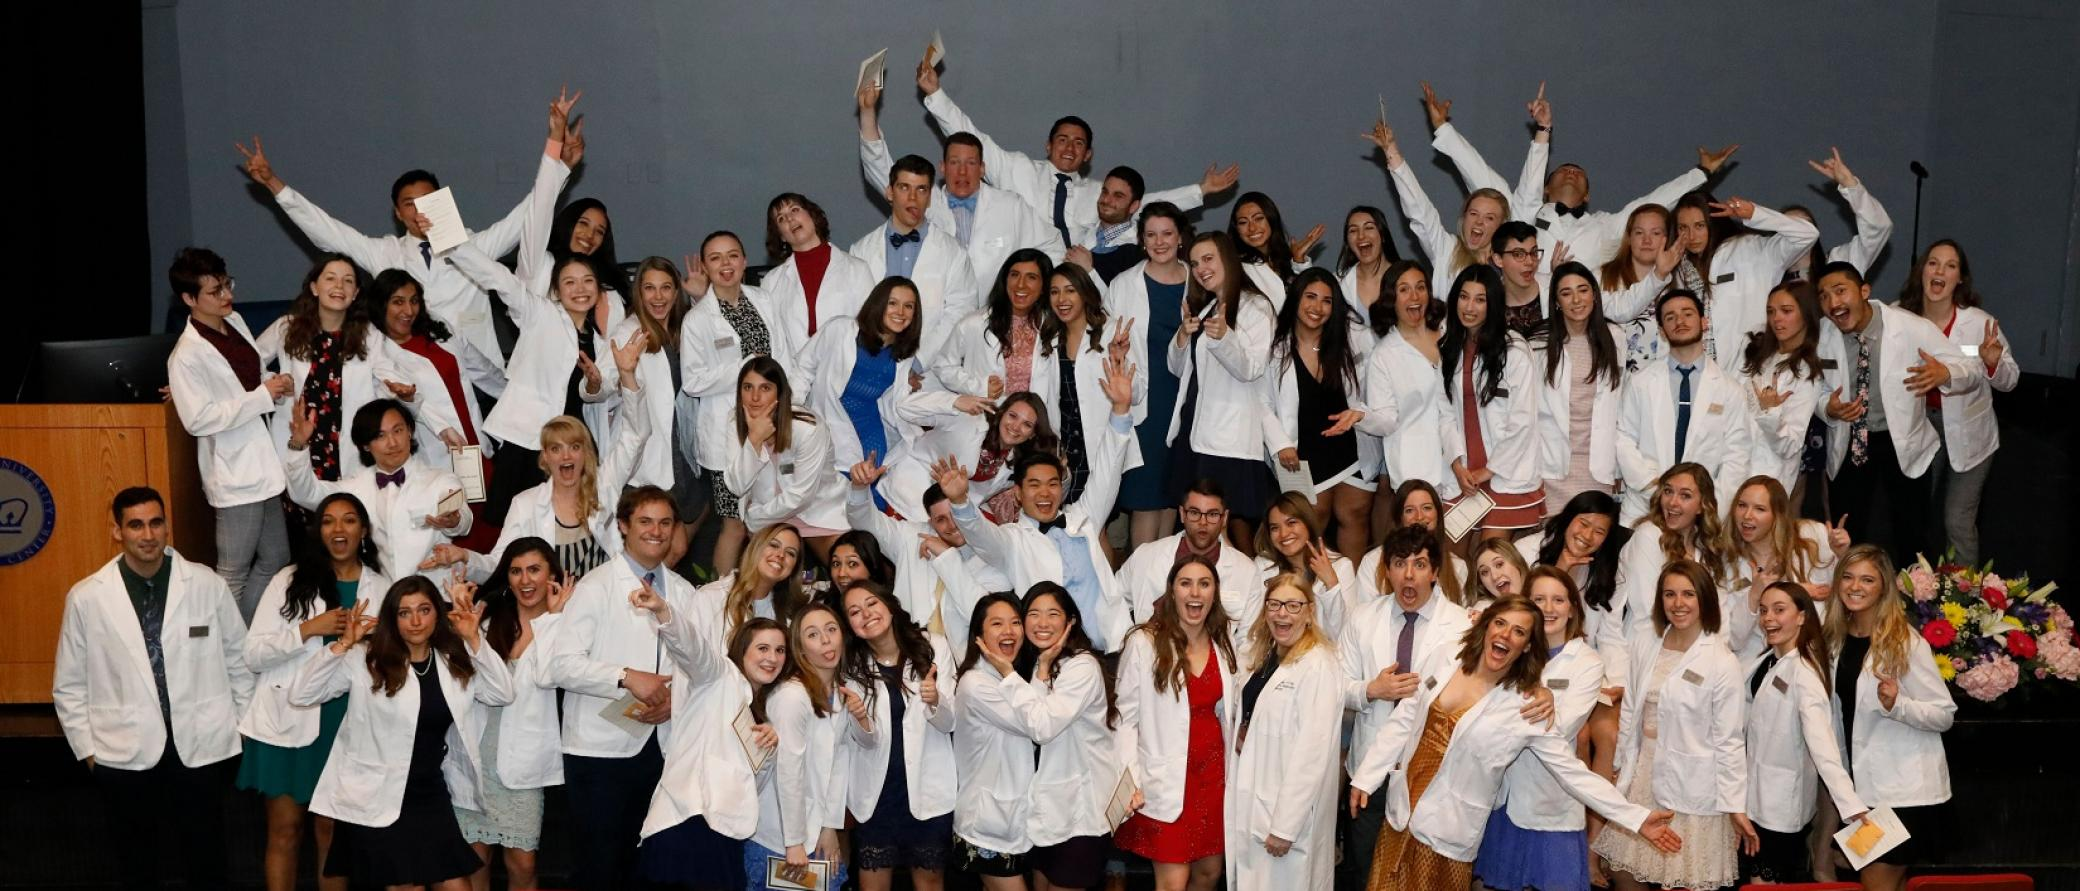 Students on stage with white coats